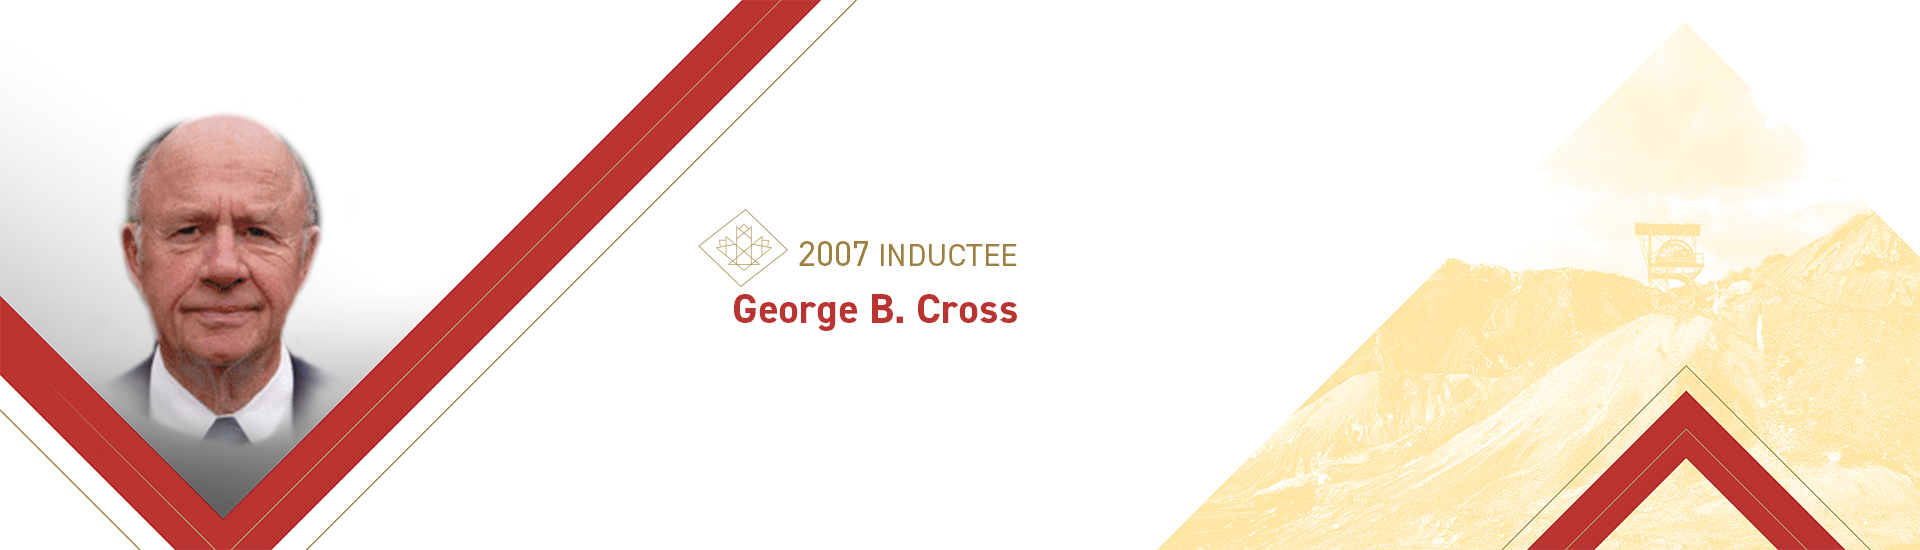 George B. Cross (b. 1932)